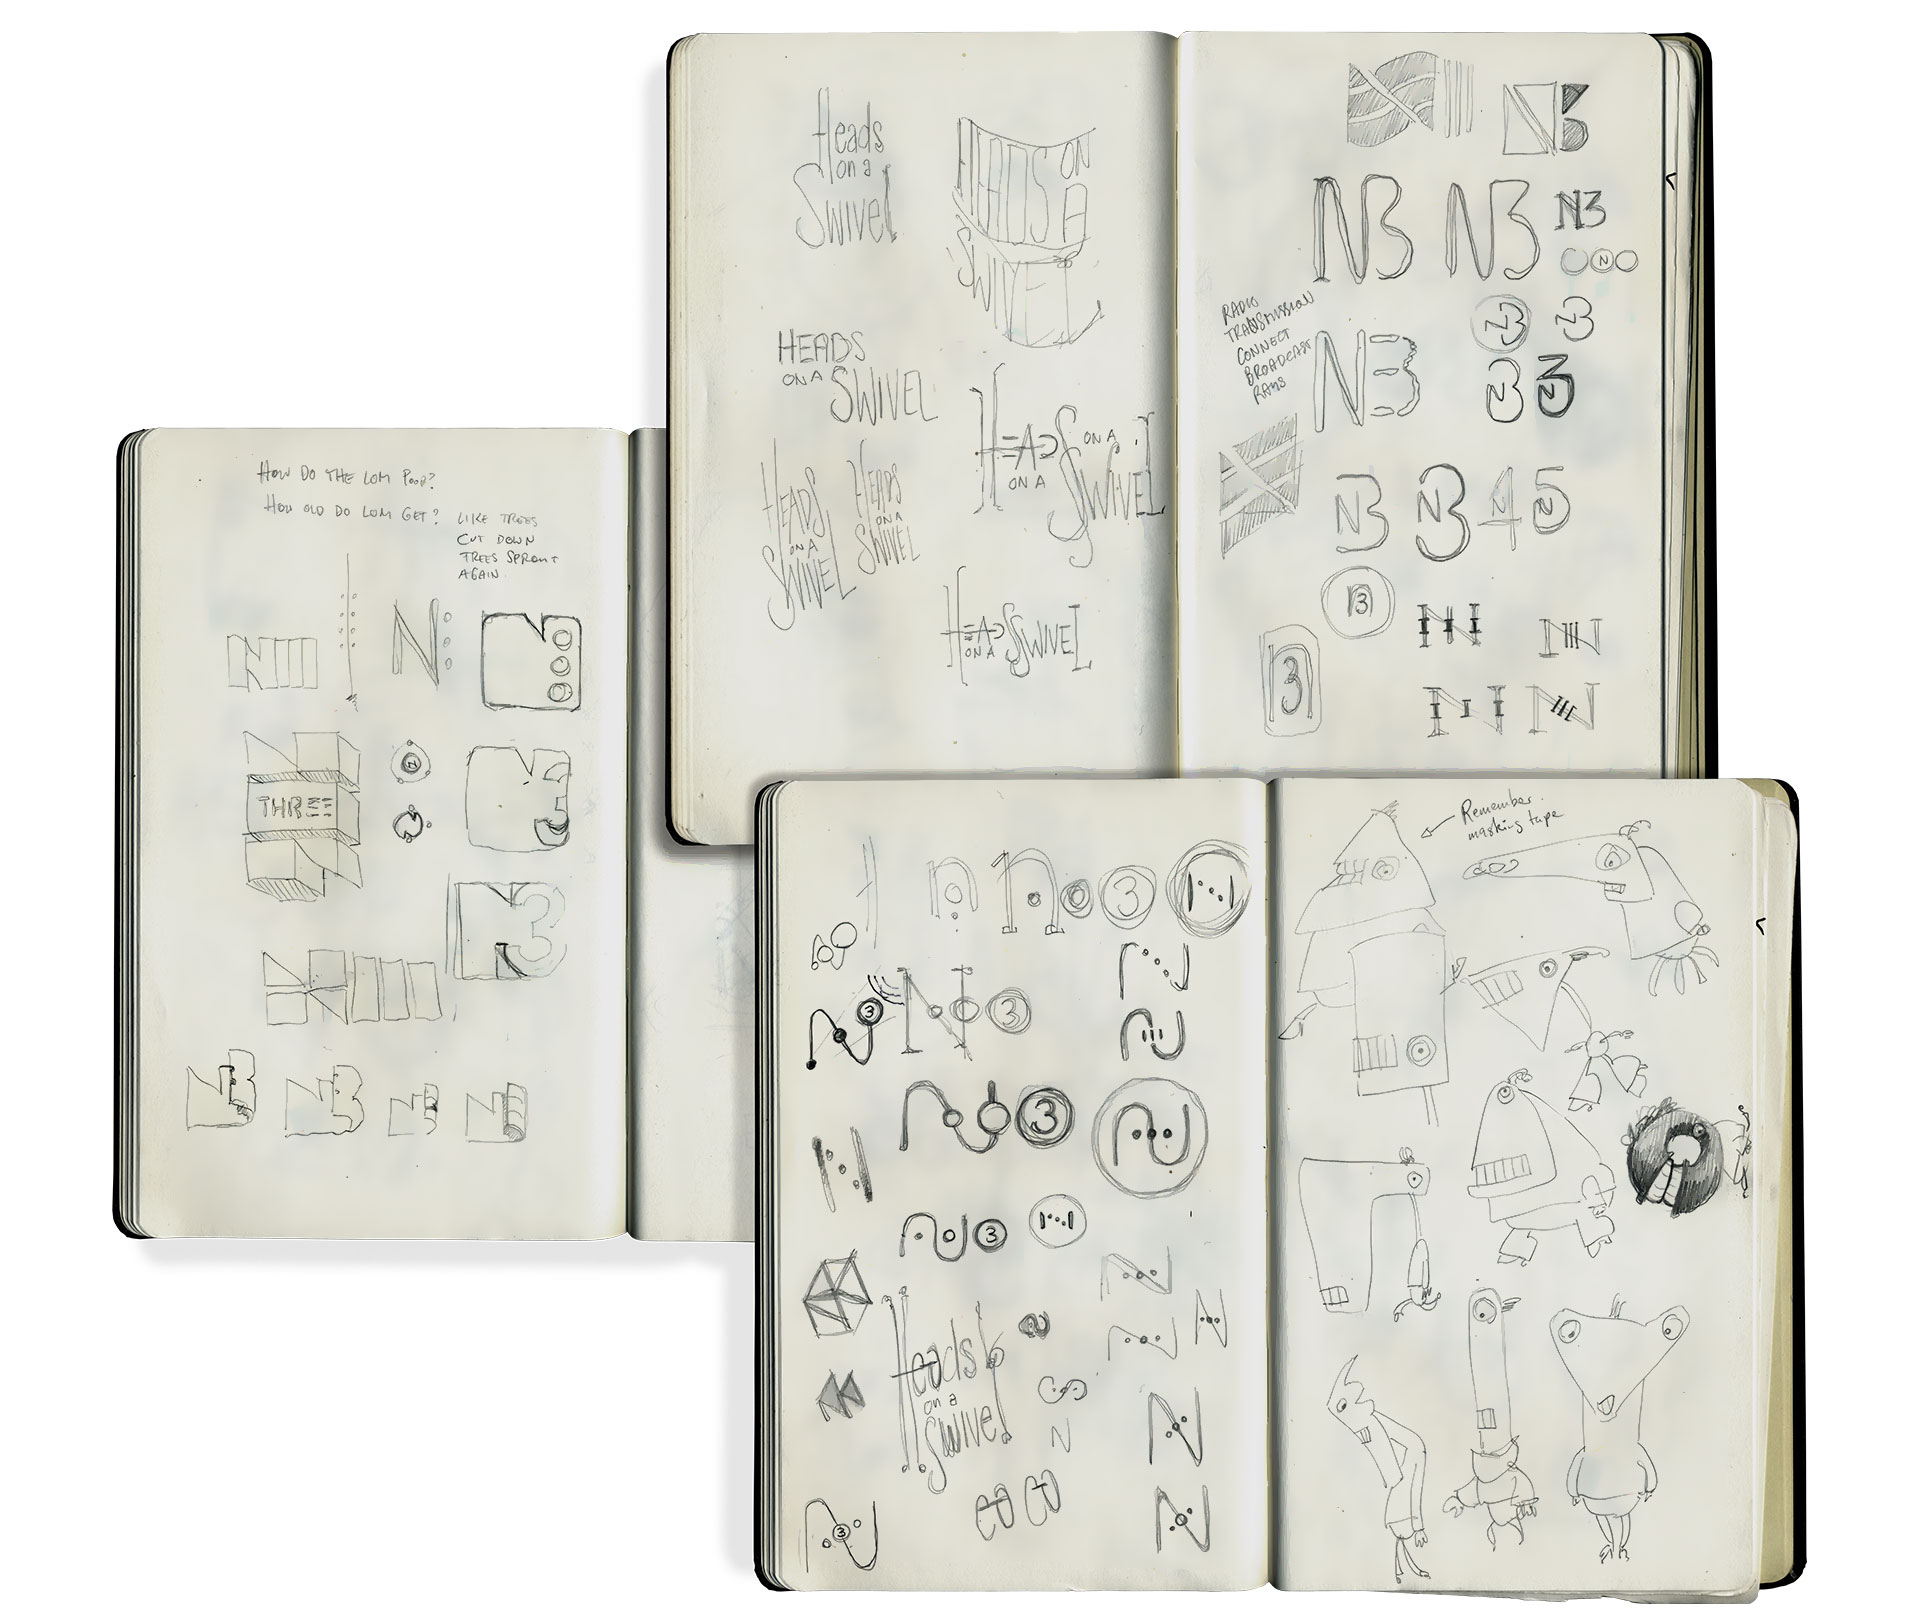 344-OBJECT-N3-sketches-1920@2x.jpg